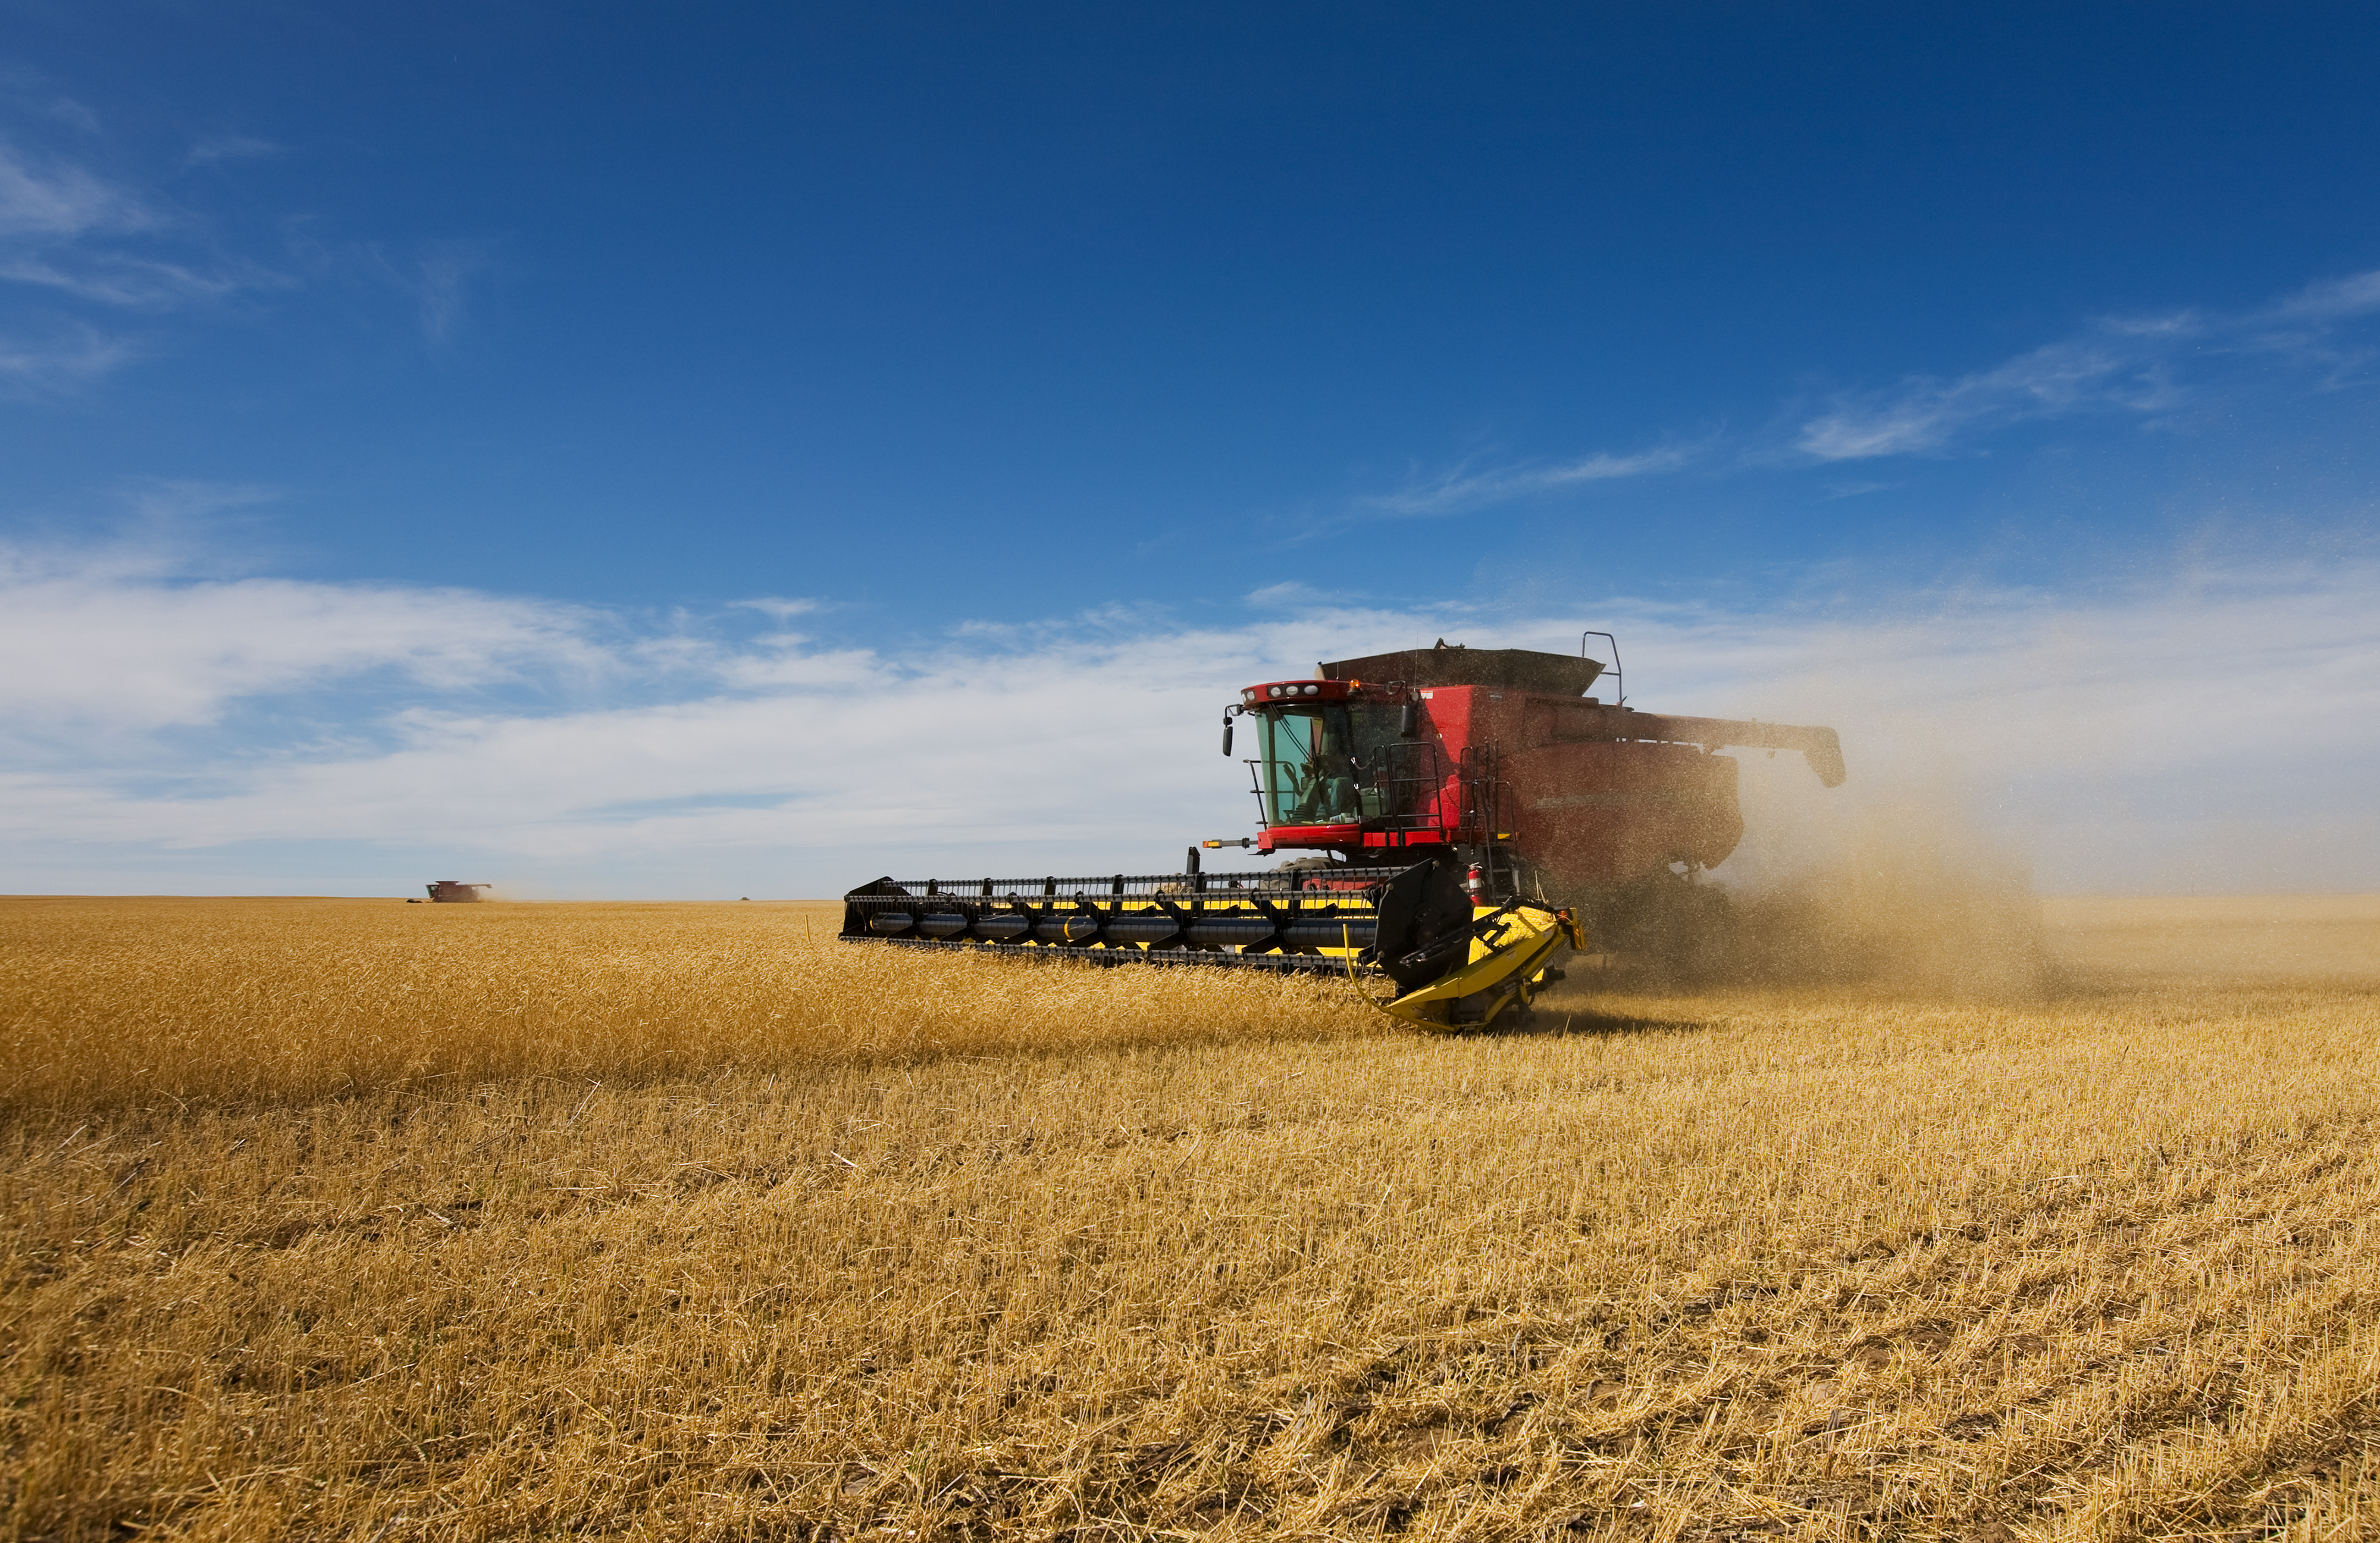 StockPhotography_Purchased_Photo_Agriculture_012